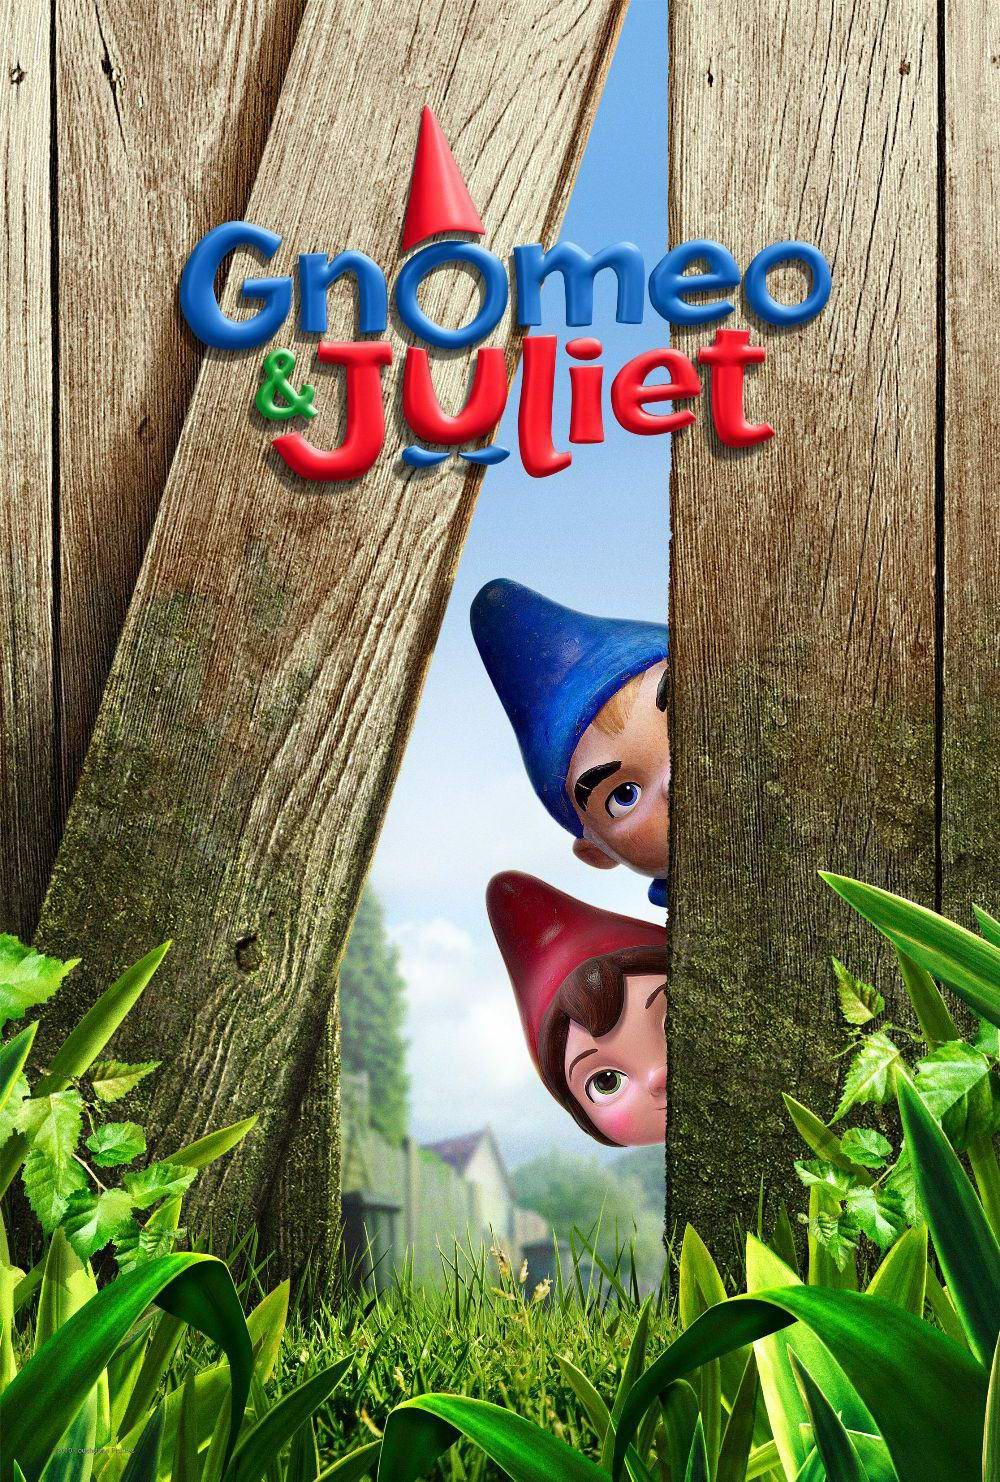 Gnomeo and Juliet a little adventure goes a 'lawn' way in